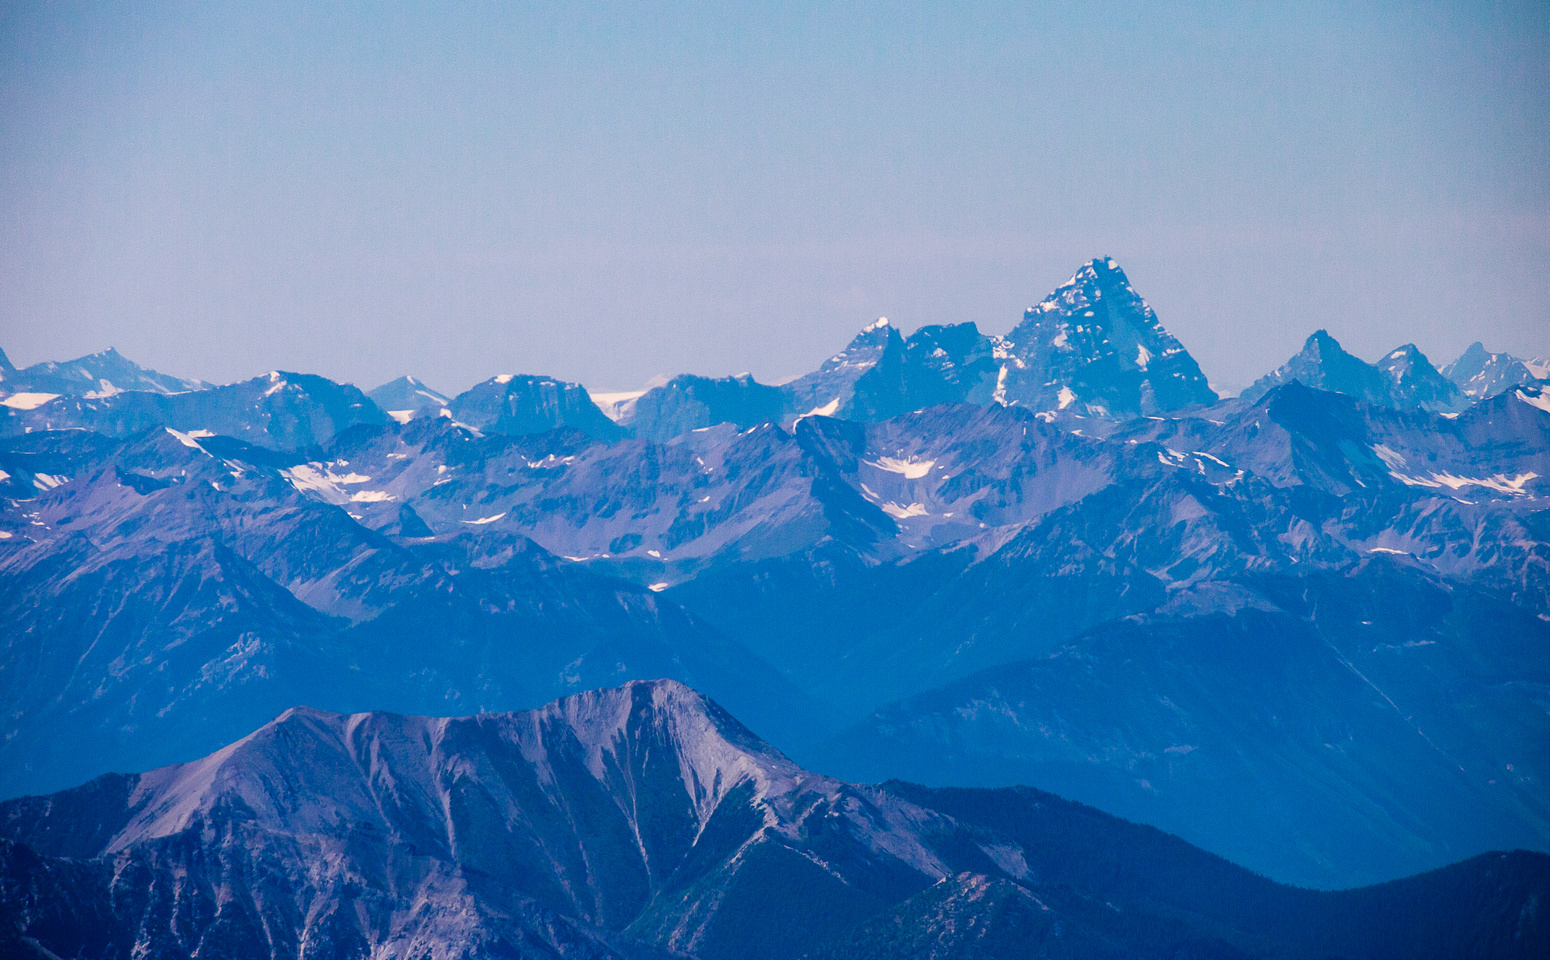 Mount Sir Donald is another giant peak to the west in the Selkirk mountain range.